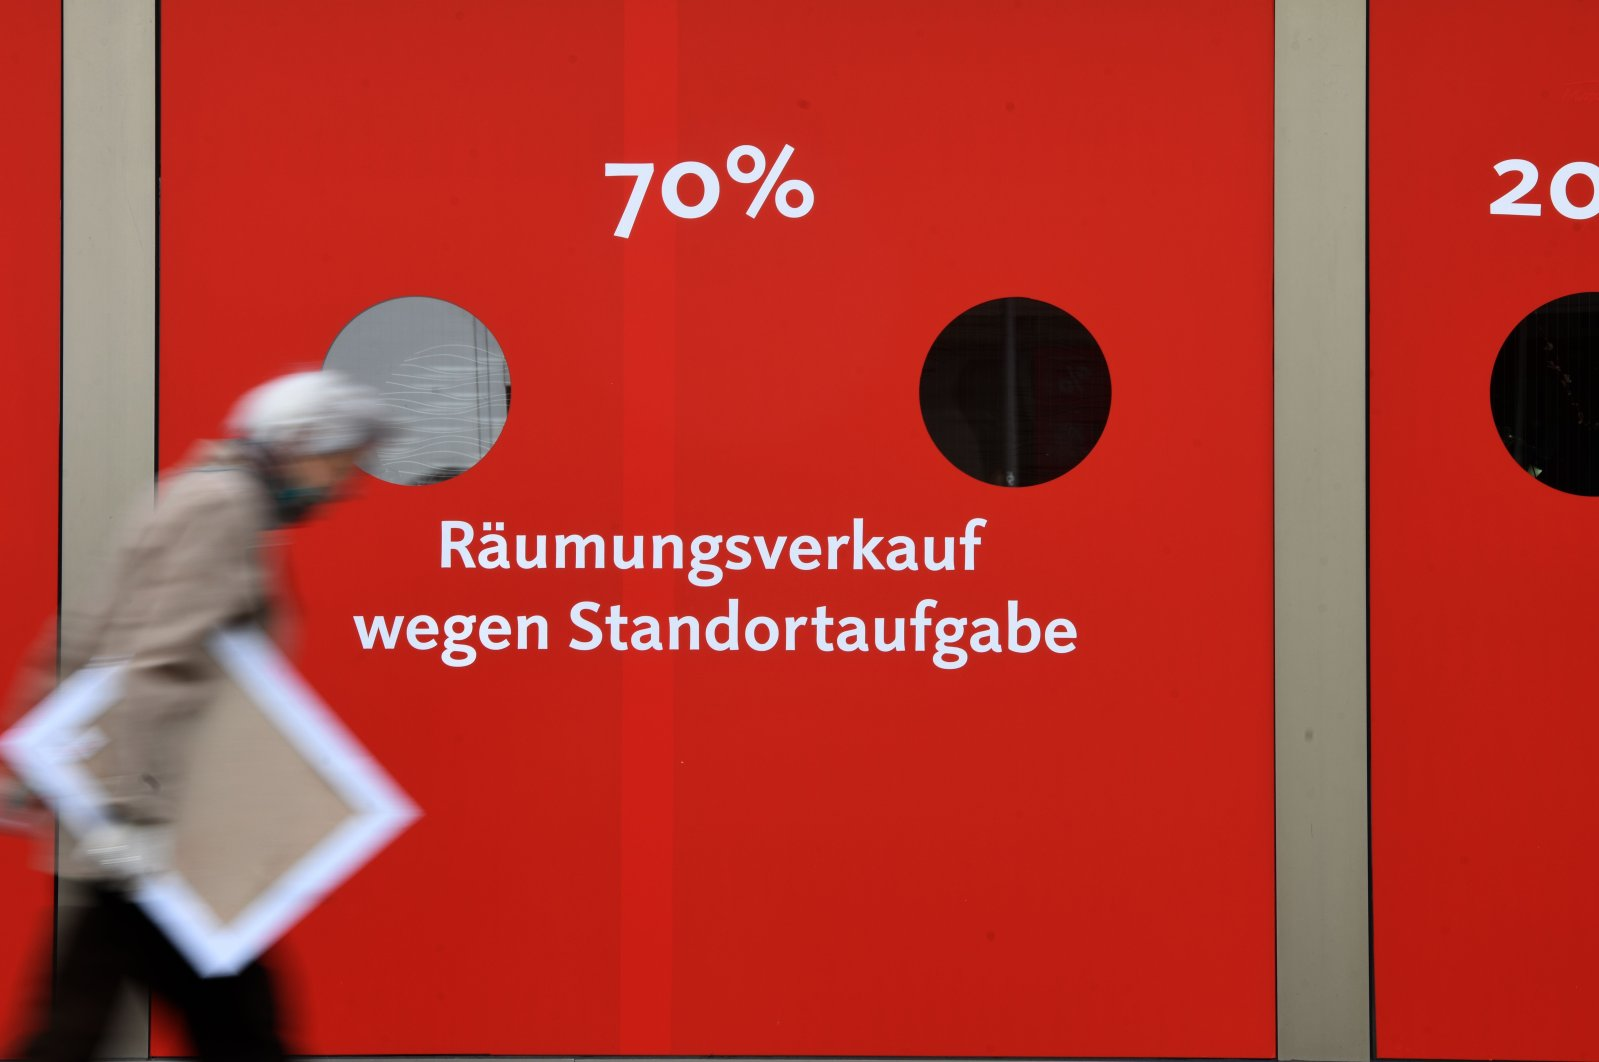 A woman walks past a sign for a clearance sale at a shop in Essen, western Germany on May 12, 2020. (AFP Photo)